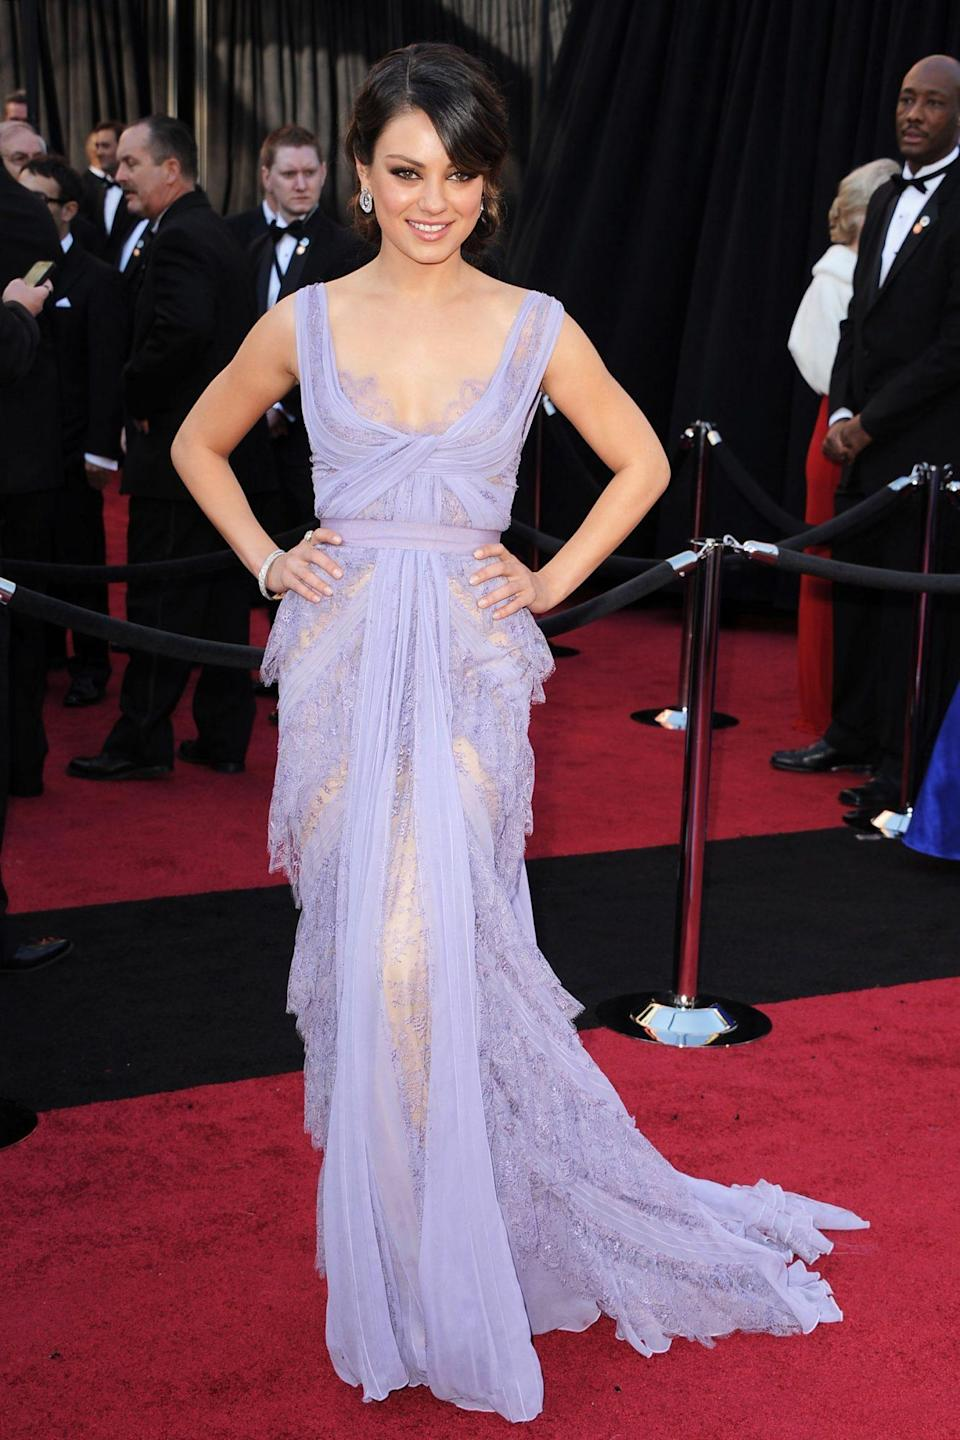 <p>Mila Kunis was a vision in lacy lavender Elie Saab. Her first Oscars, Kunis was there with the cast of <em>Black Swan</em>, which was nominated for Best Picture. </p>